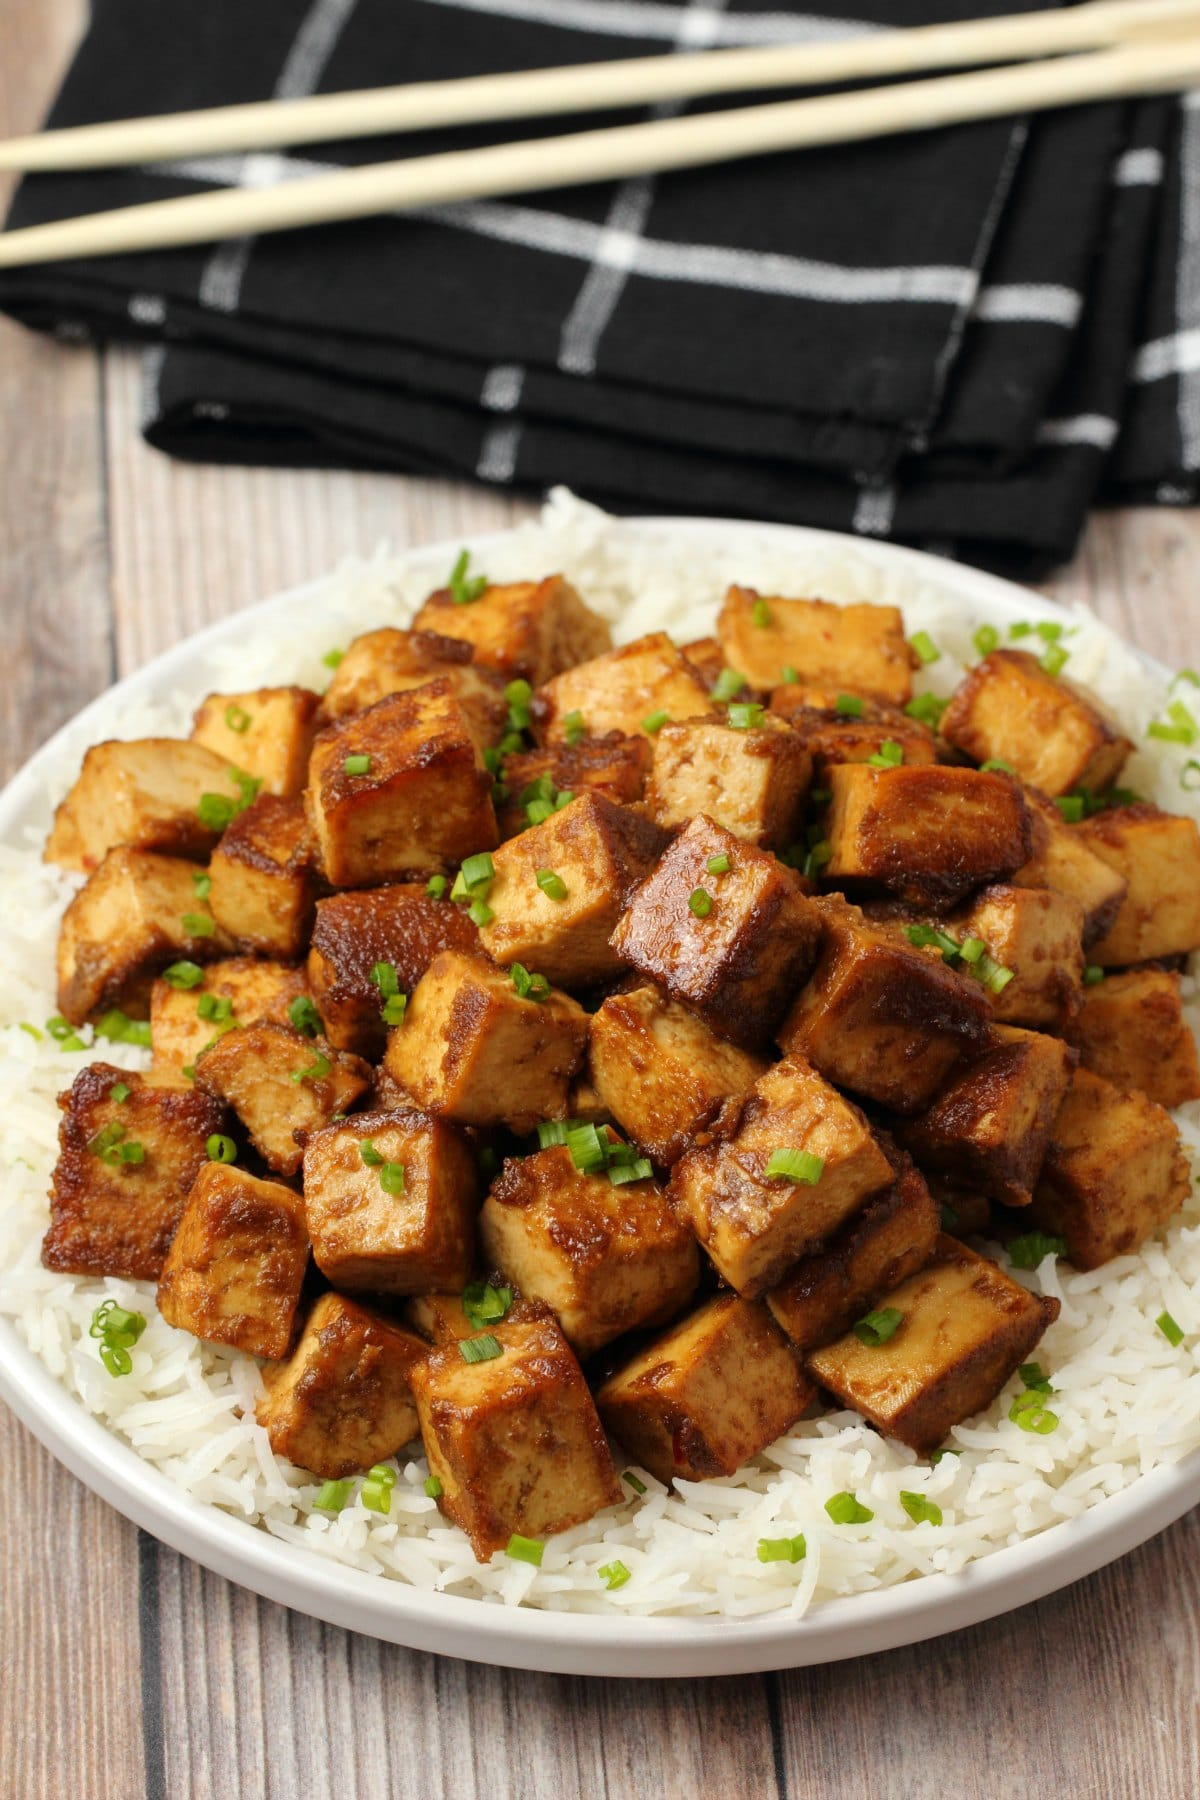 Marinated tofu topped with chopped chives on a bed of rice.